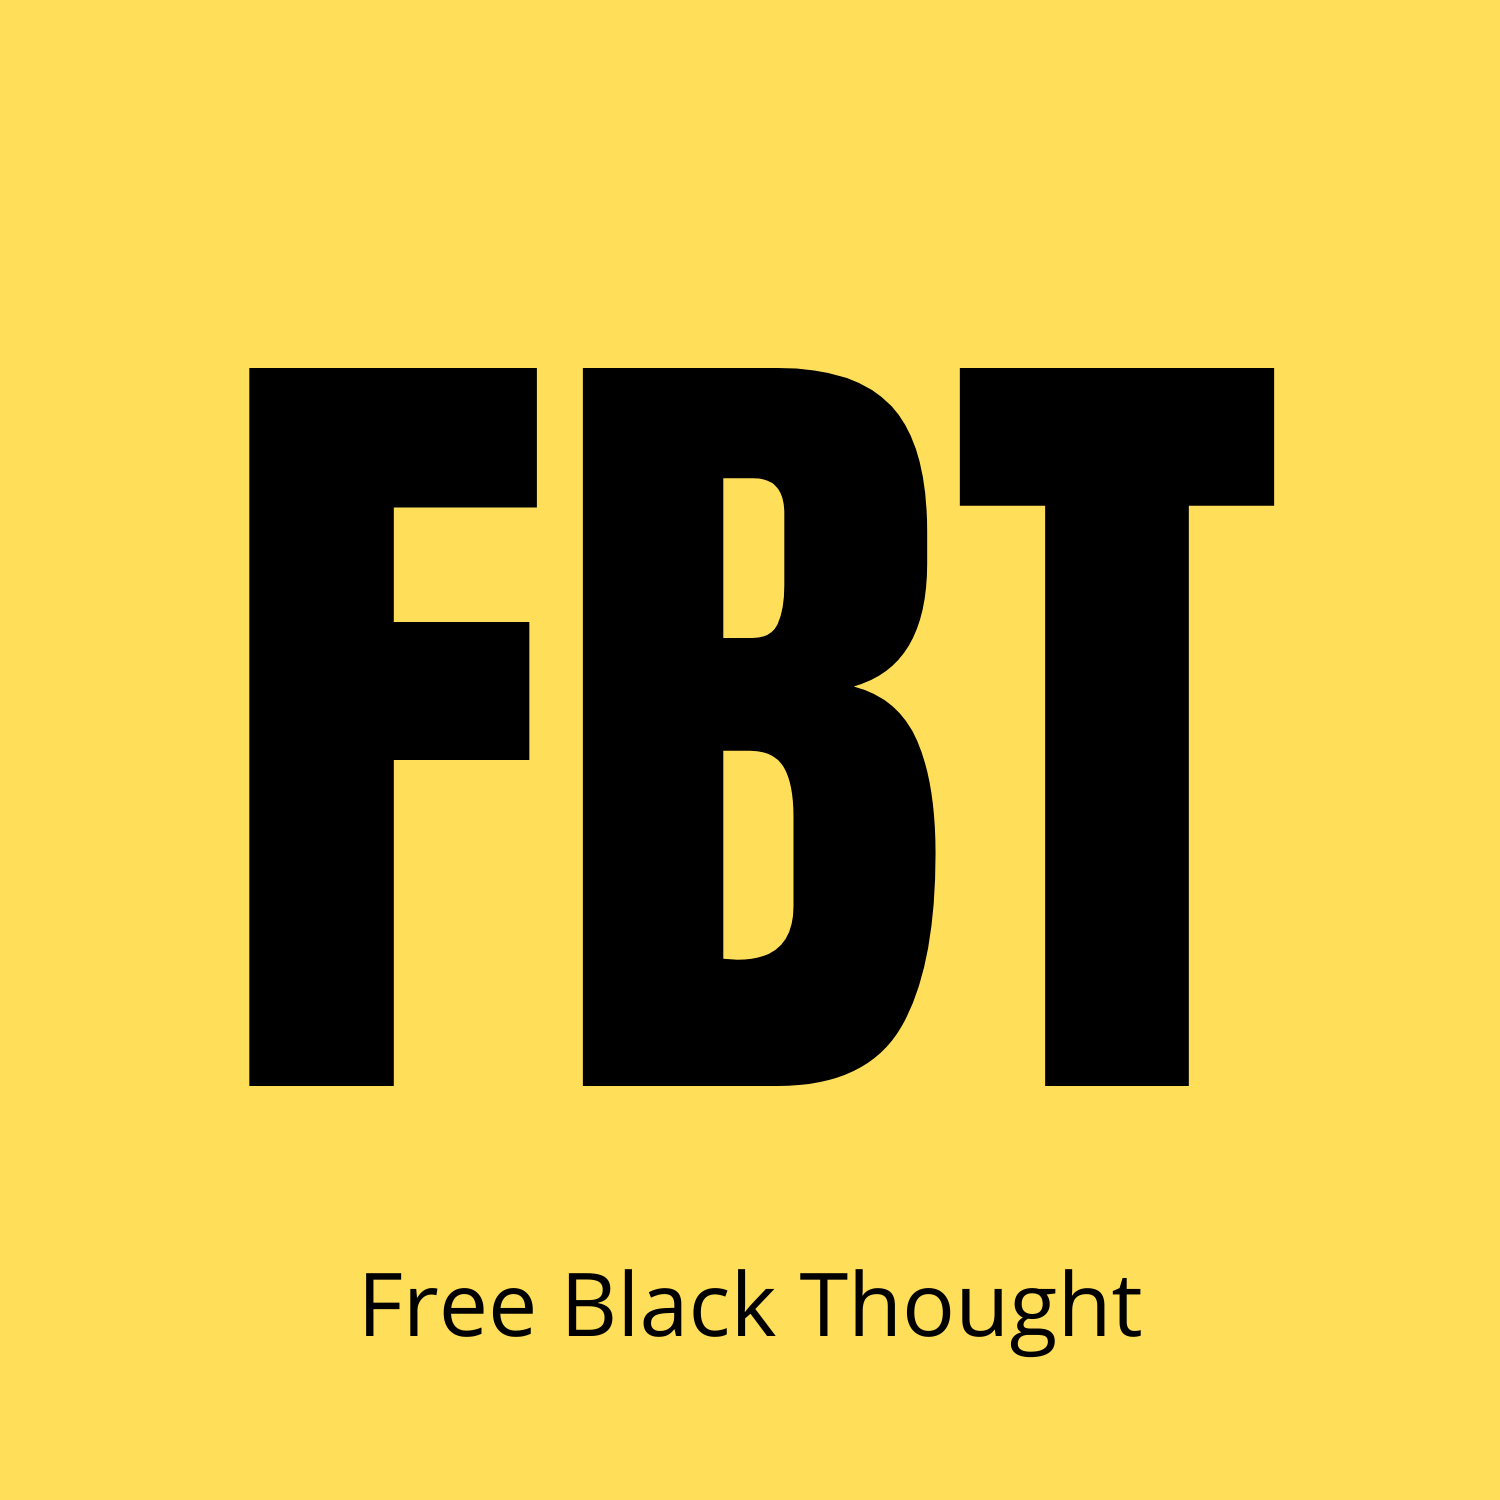 Free Black Thought